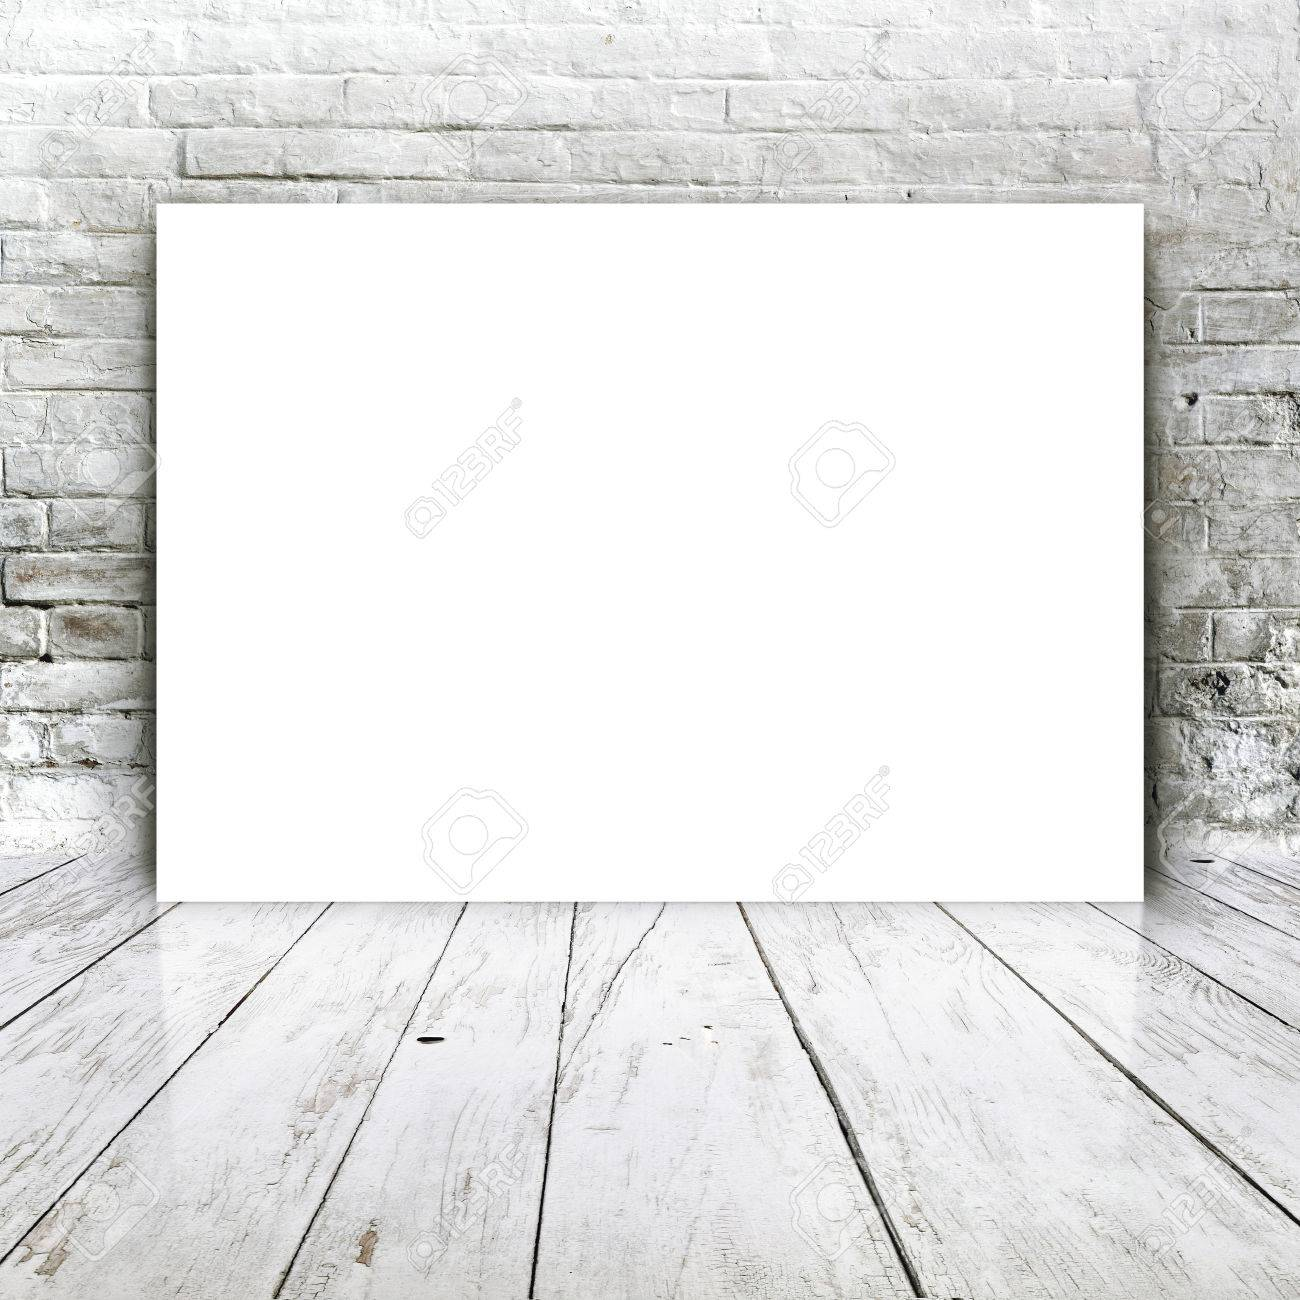 Blank poster as copy space template for your artwork or design